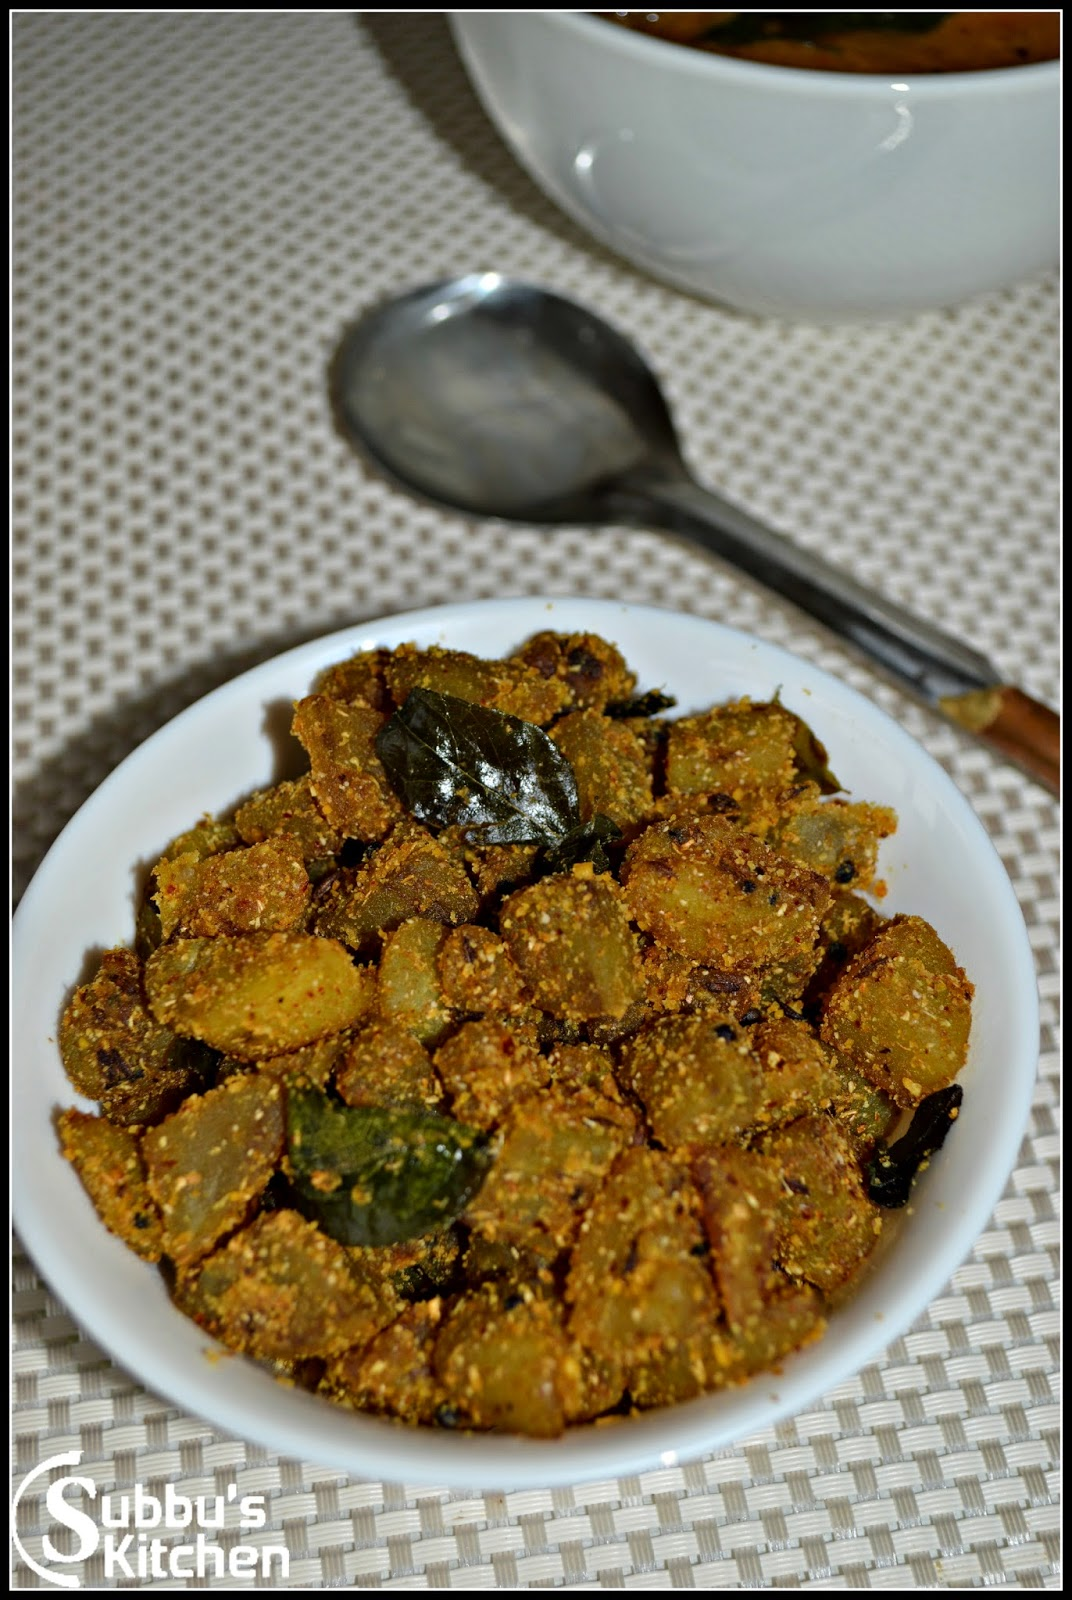 Sweet Potato Stir Fry (SakkaraVelli Kizhangu Poriyal)